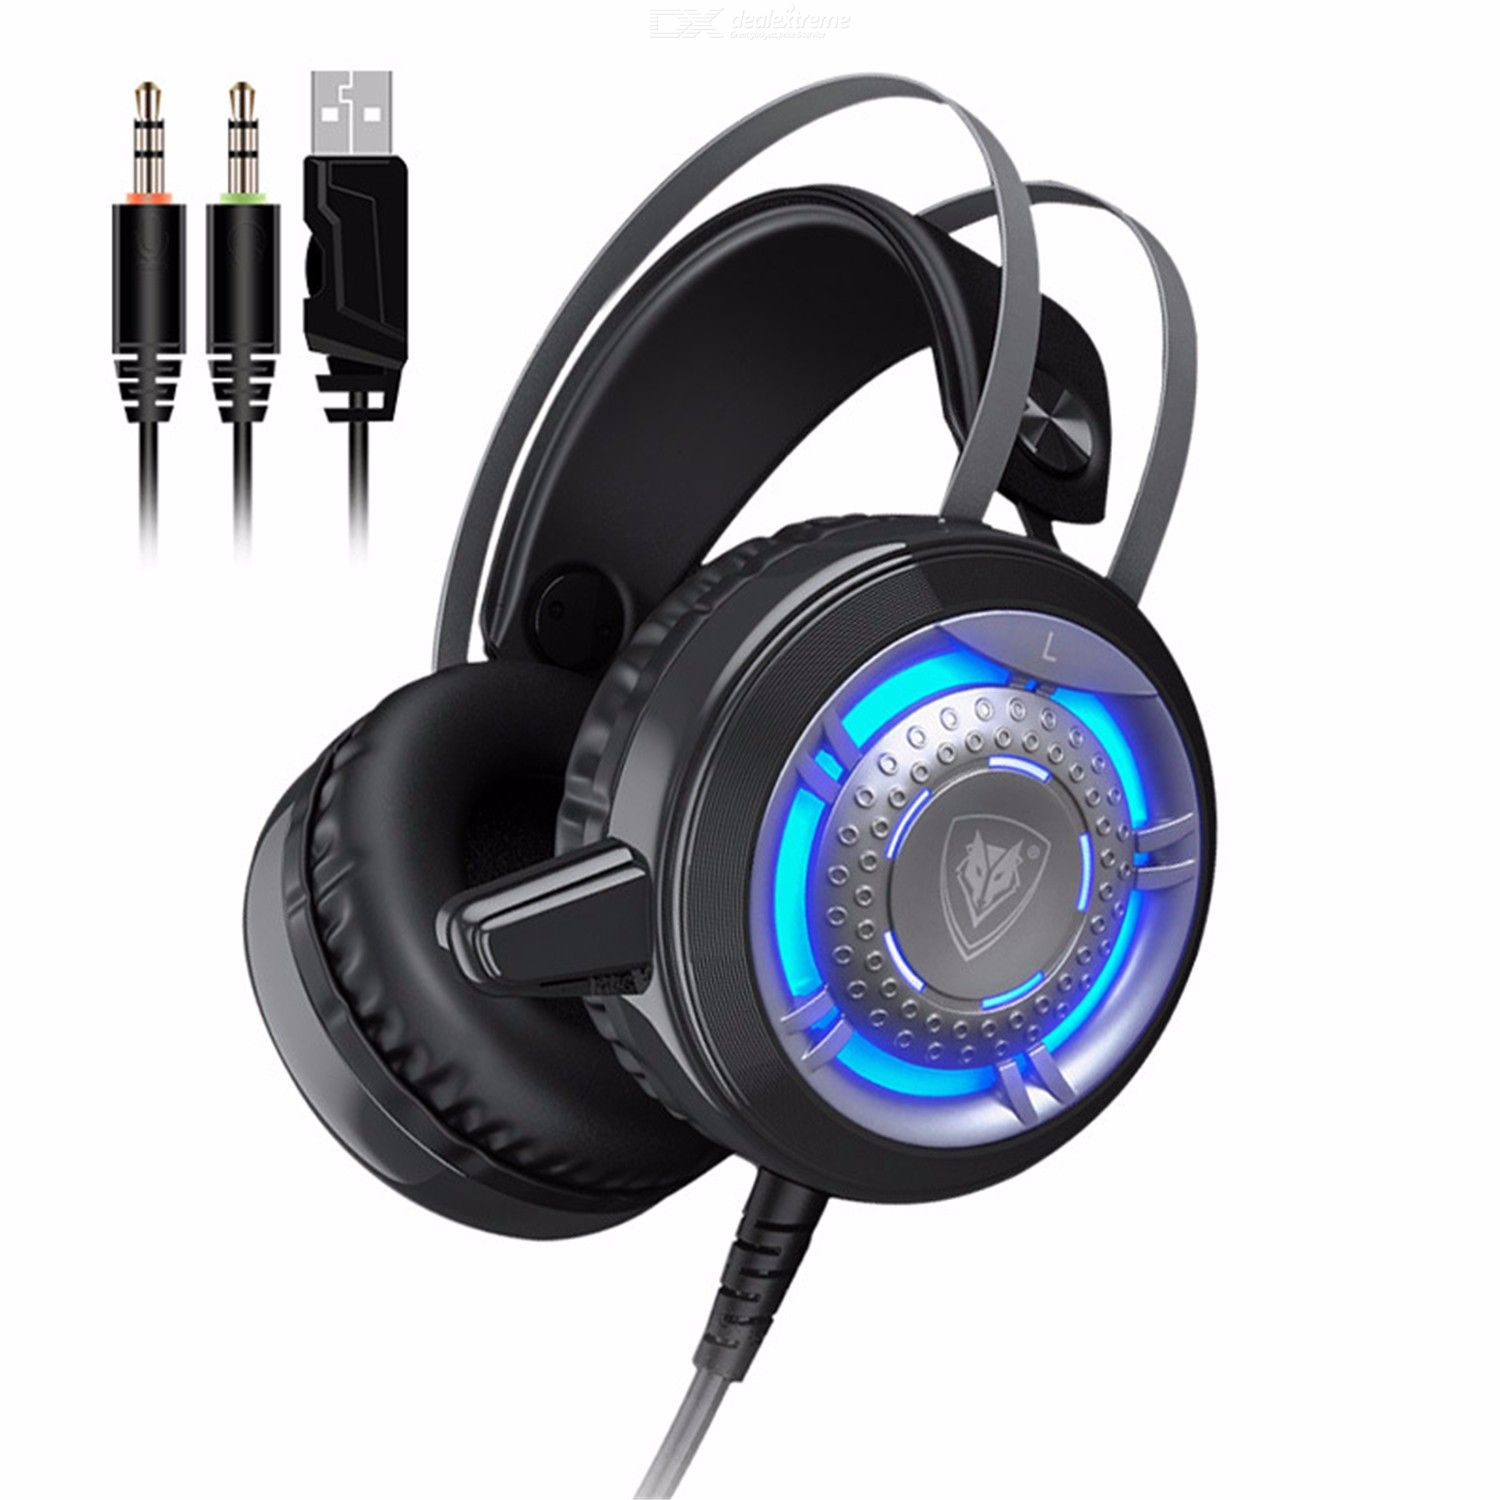 NUBWO N1 Gaming Headphone, Deep Bass Wired Game Headset Earphone With Microphone Voice Control LED Light for Computer PC